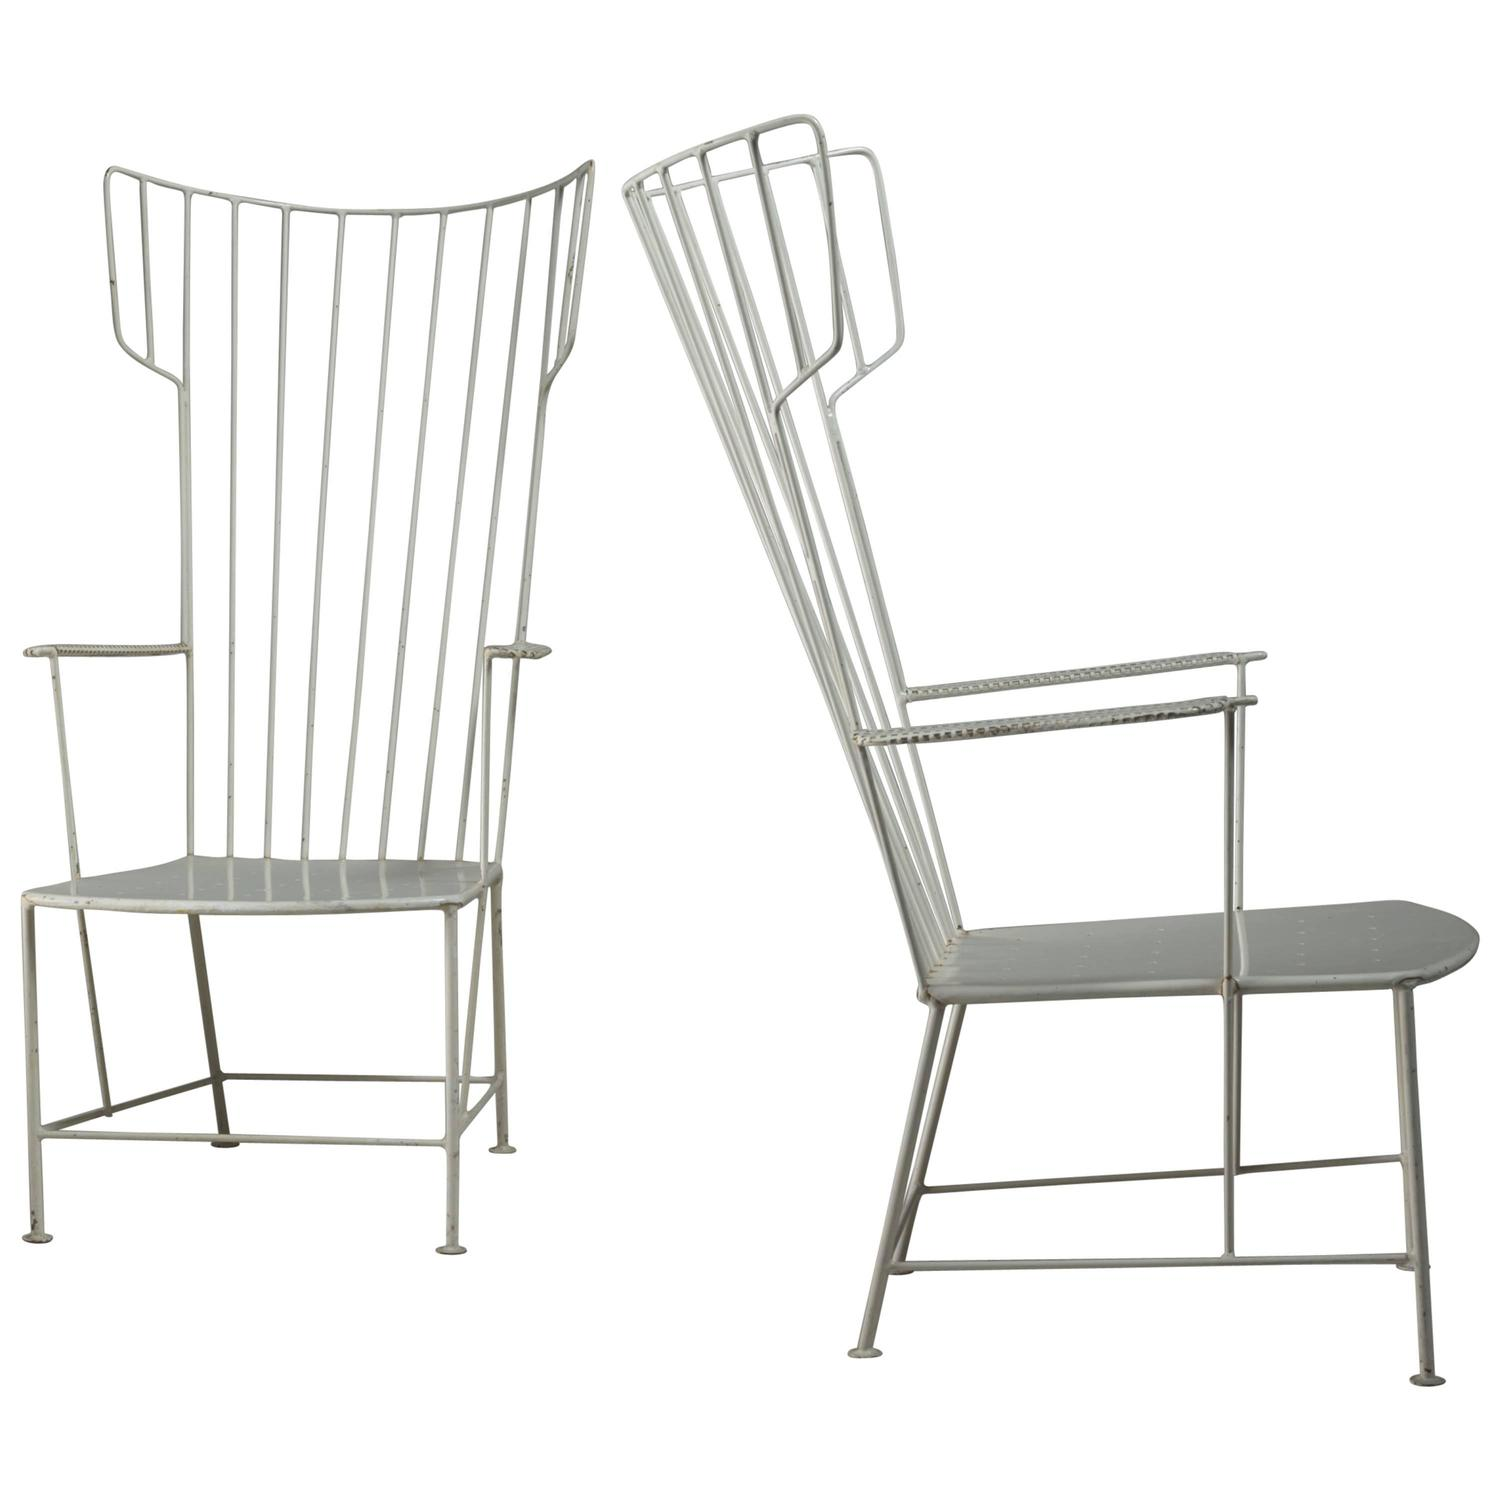 Praun And Lauterbach Pair Of White Metal Garden Chairs Austria 1950s For At 1stdibs